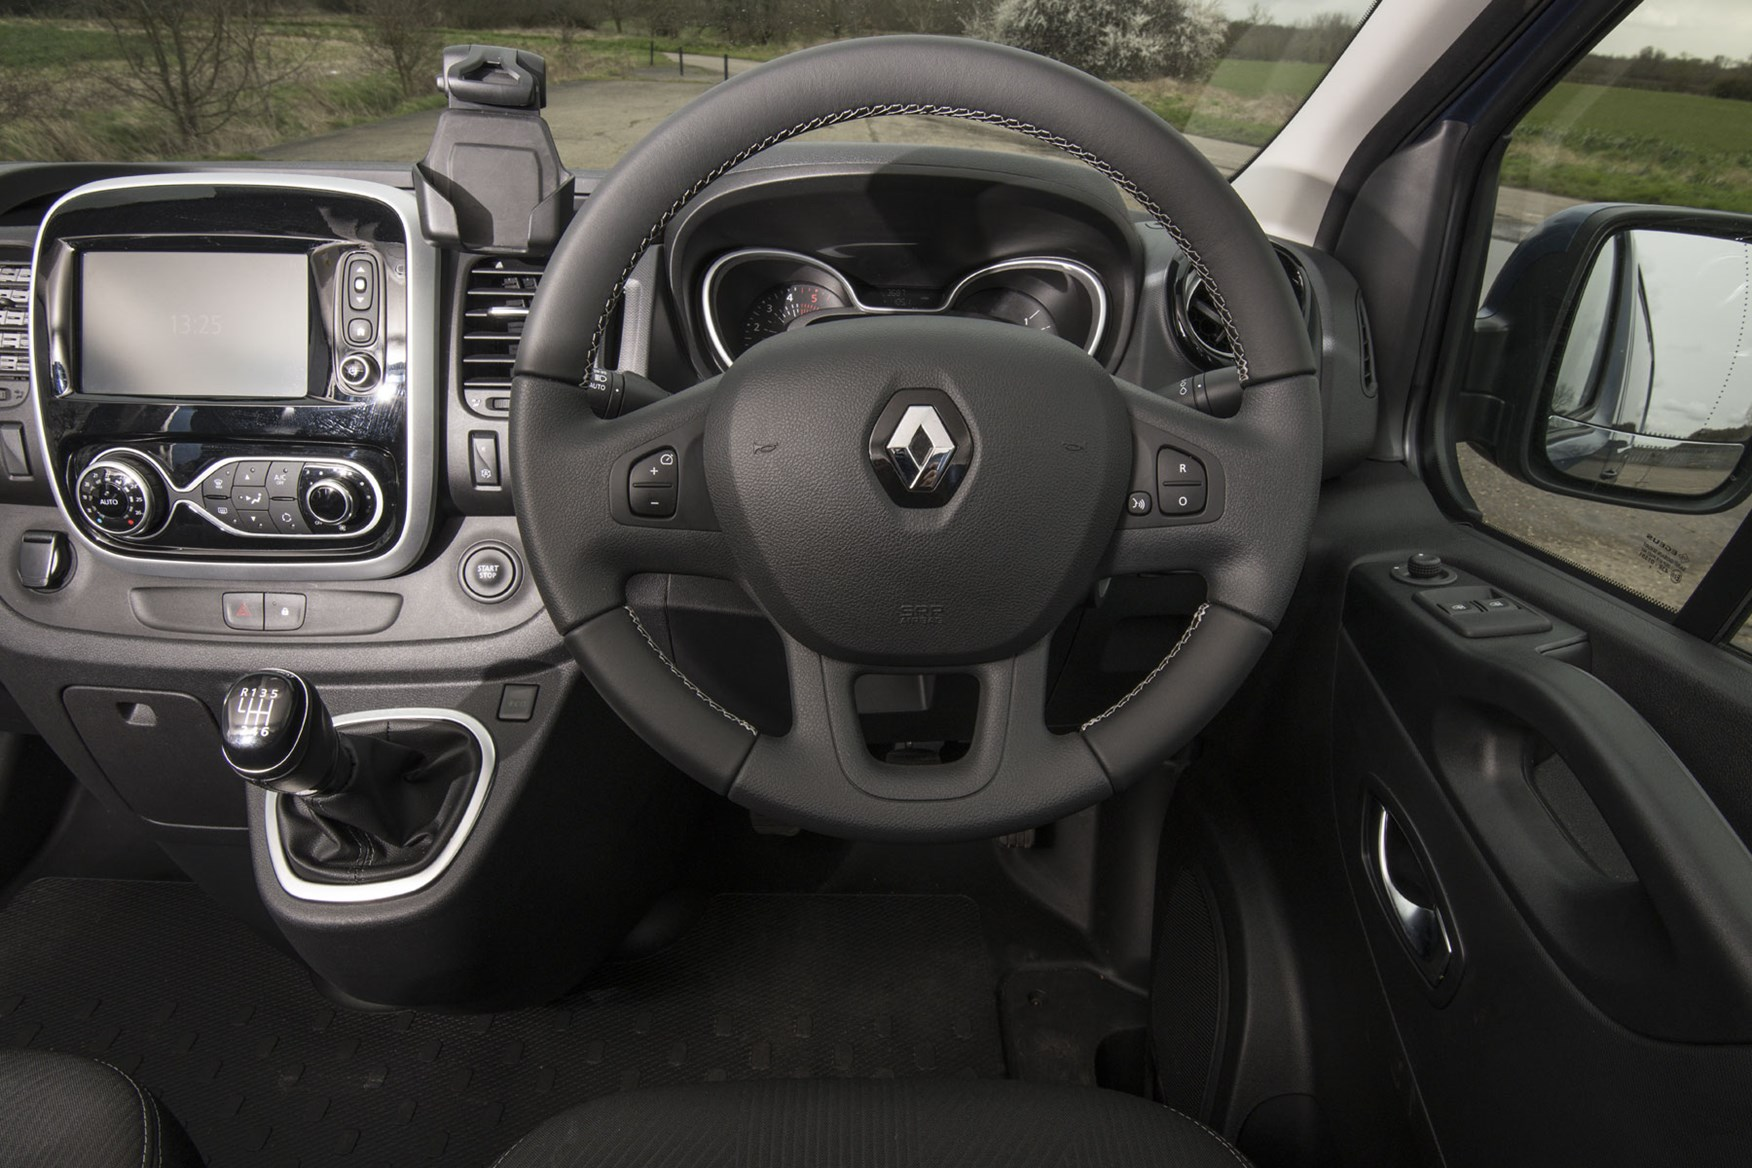 Renault trafic review - facelift, cab interior, steering wheel, dials, infotainment, 2020